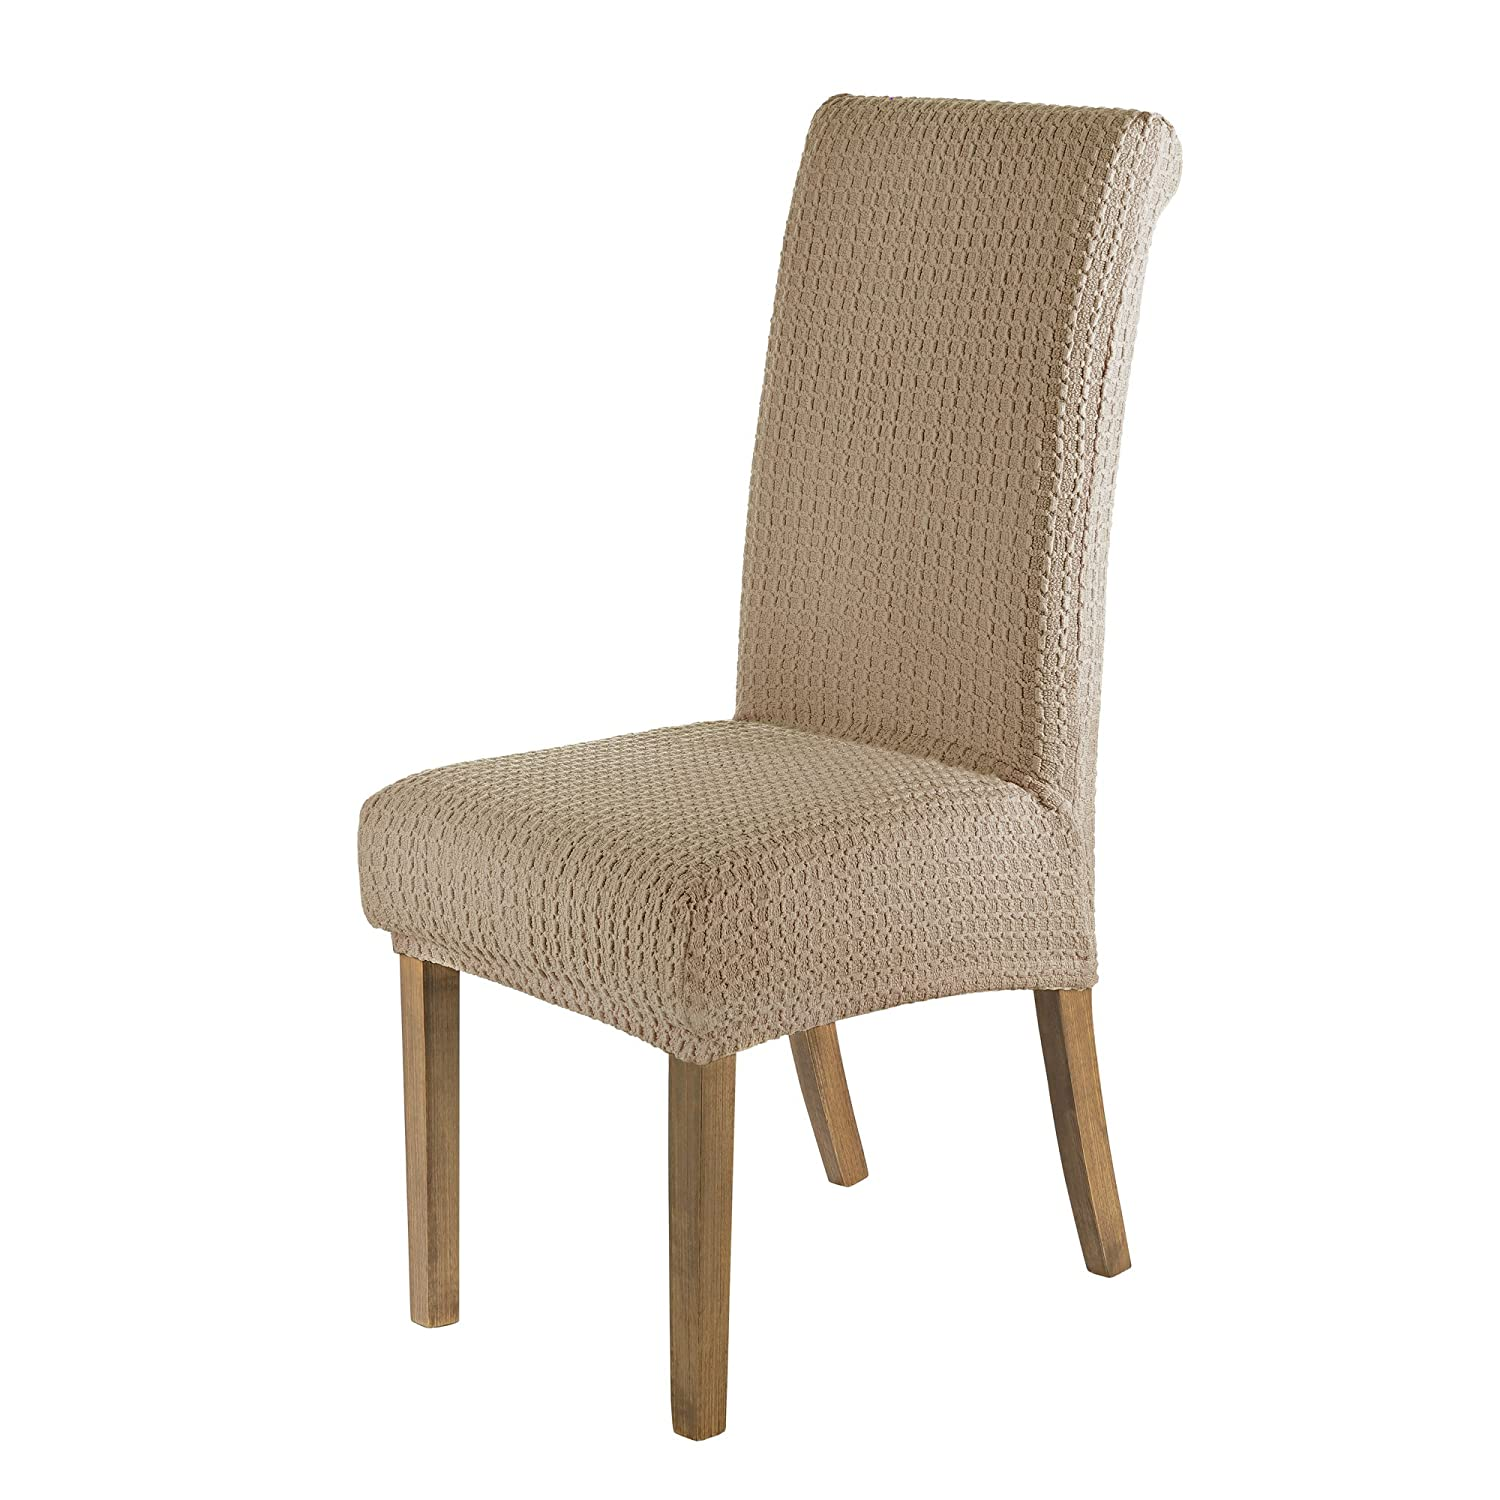 SCHEFFLER-HOME Jacquard Lea Chair Covers for Dining Room 2 Pcs, Stretch Chaircover, Elastic Slipcover, Decor Cover with Elastic Band, universal Fitting, Spandex Covers for Home - Beige Manufactured in Germany